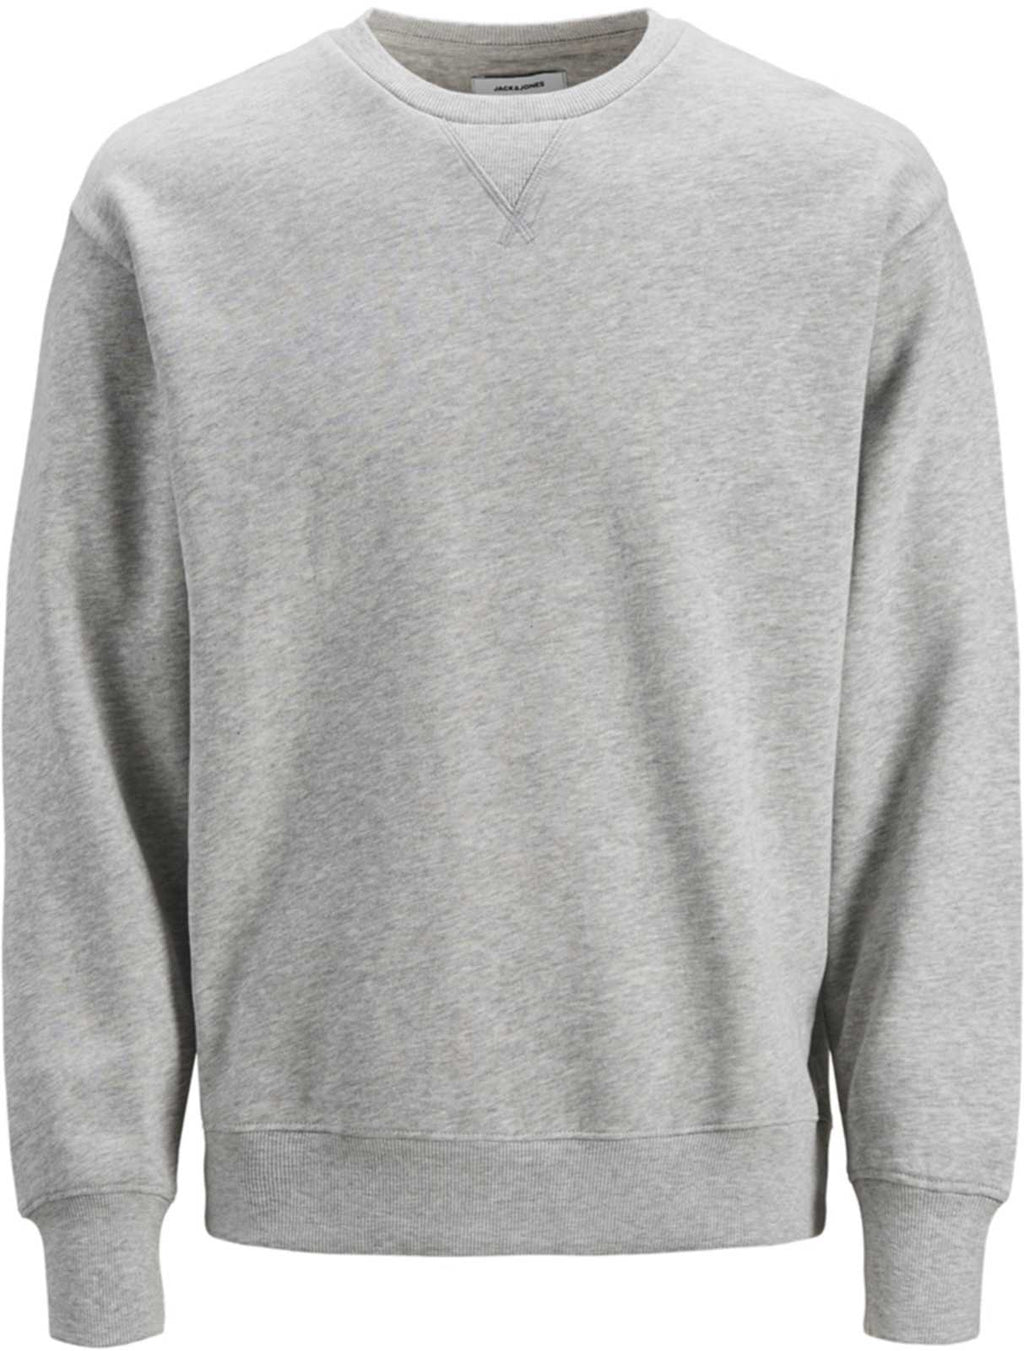 Jack & Jones Melange Crew Neck Sweatshirt Light Grey